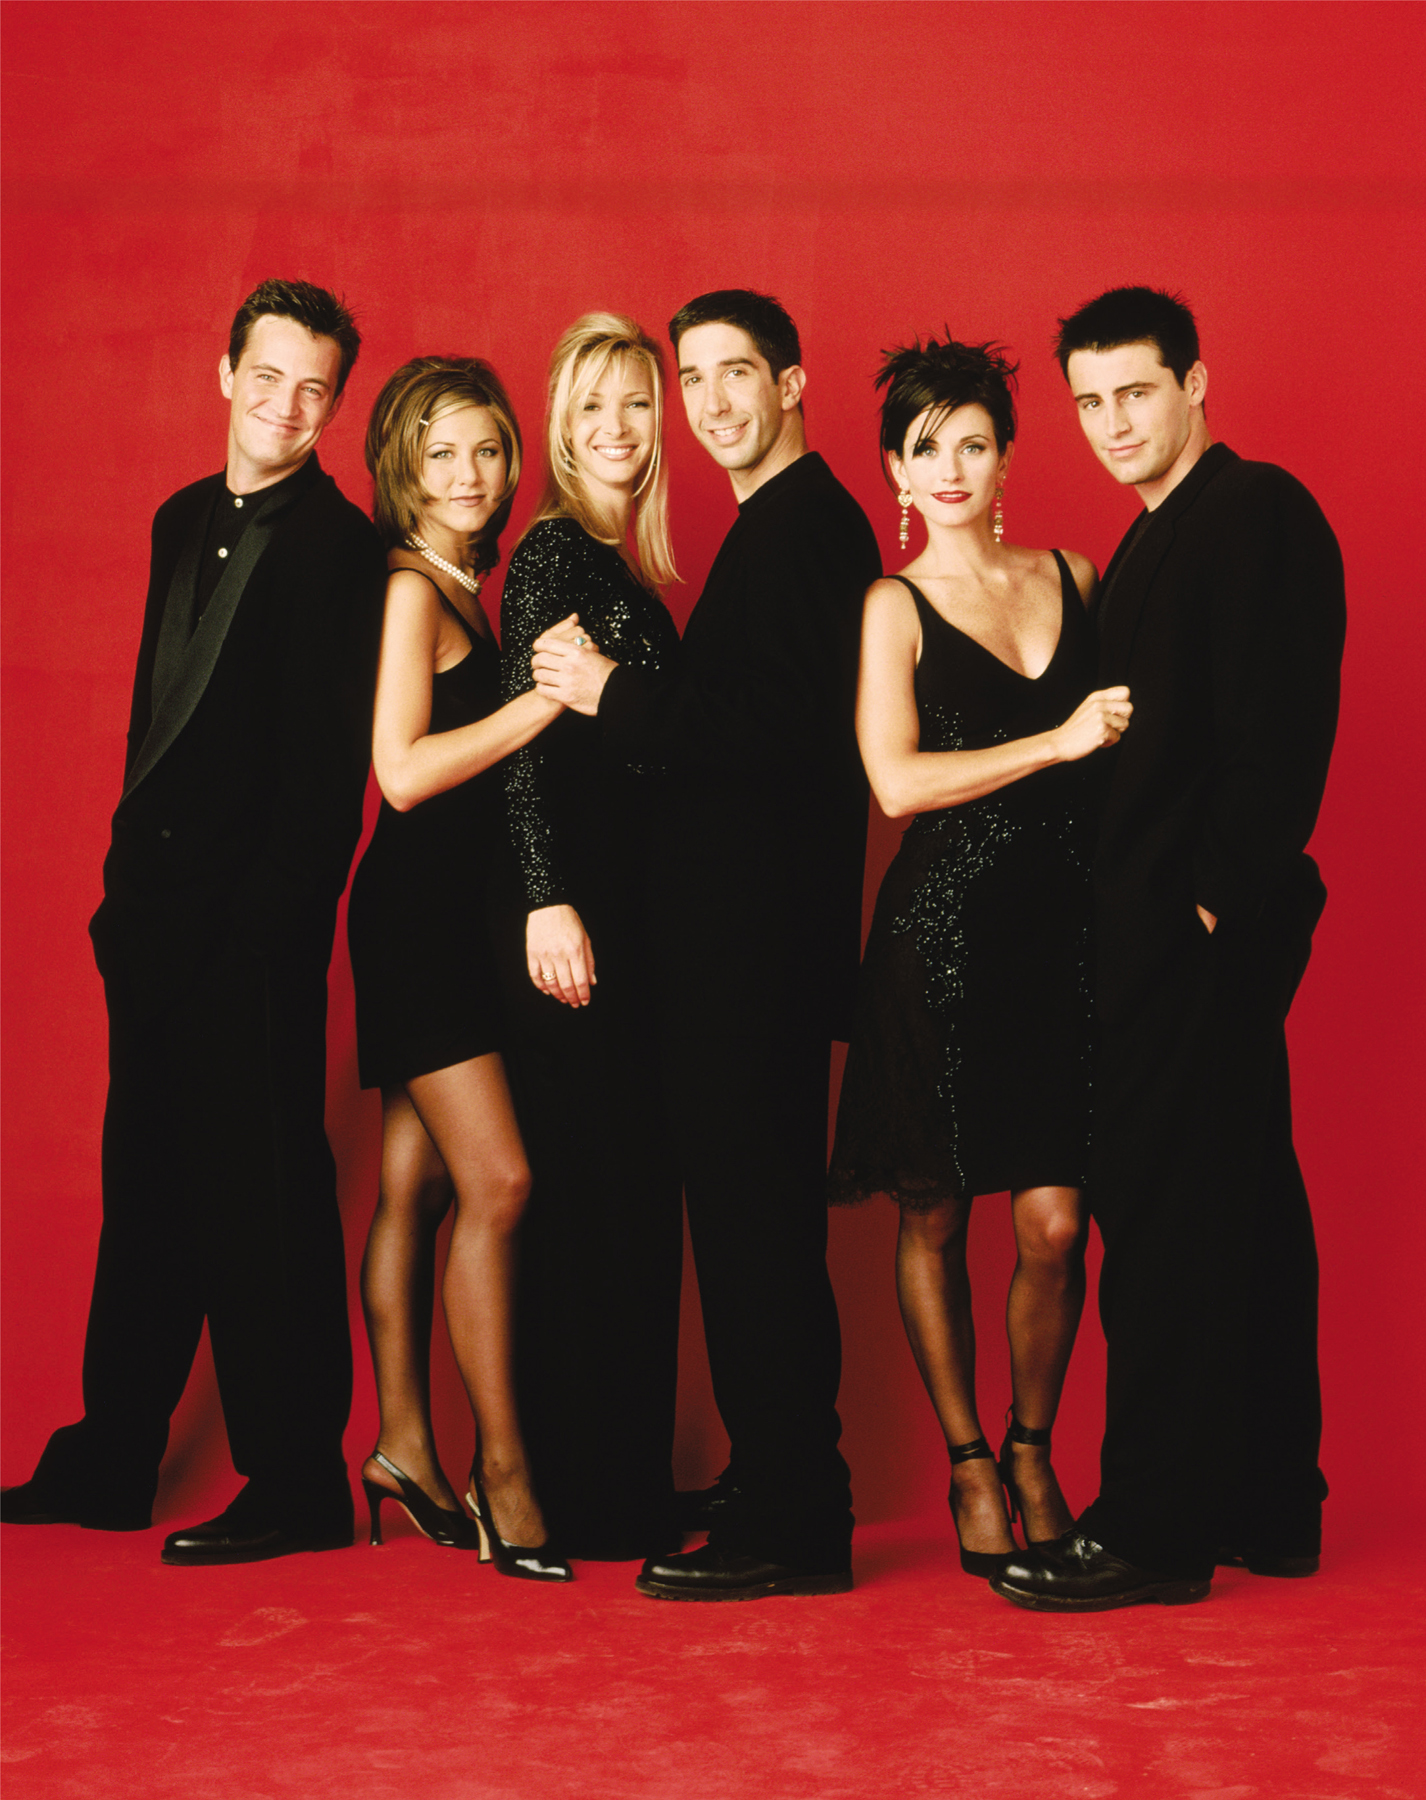 Friends Forever [25th Anniversary Ed]:The One About the Episodes -- Susman,  Gary;Dillon, Jeannine;Cairns, Bryan -京东阅读-在线阅读